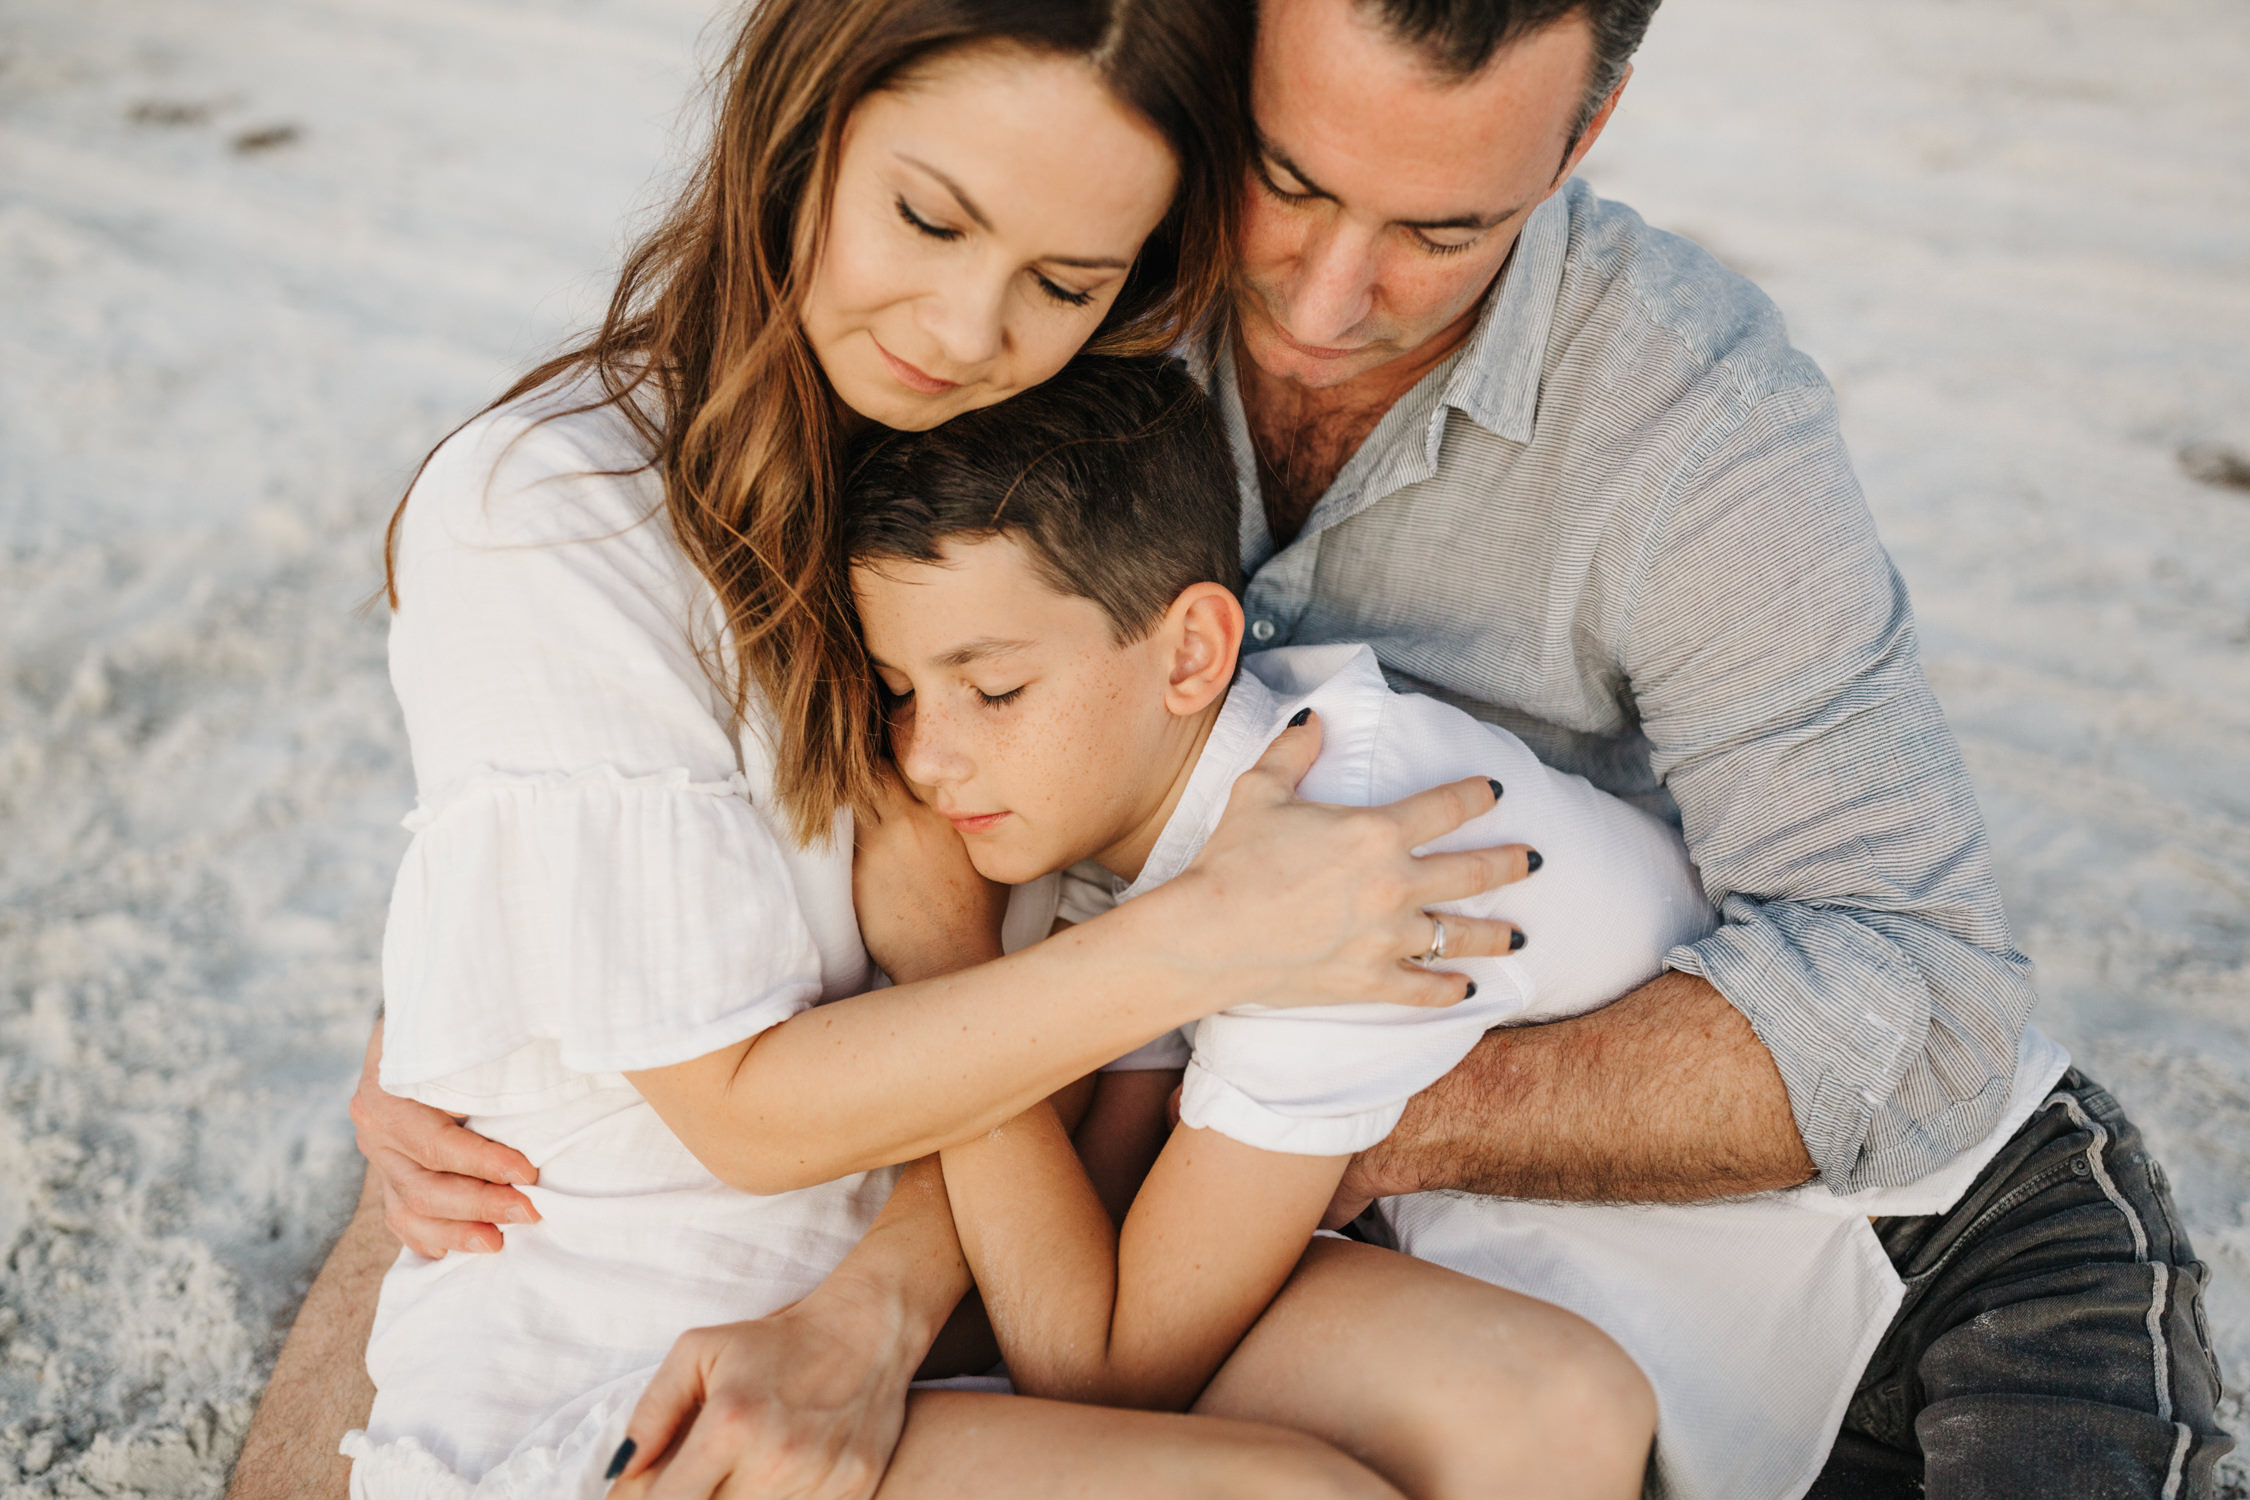 tampa-family-lifestyle-photographer-candid-natural-12